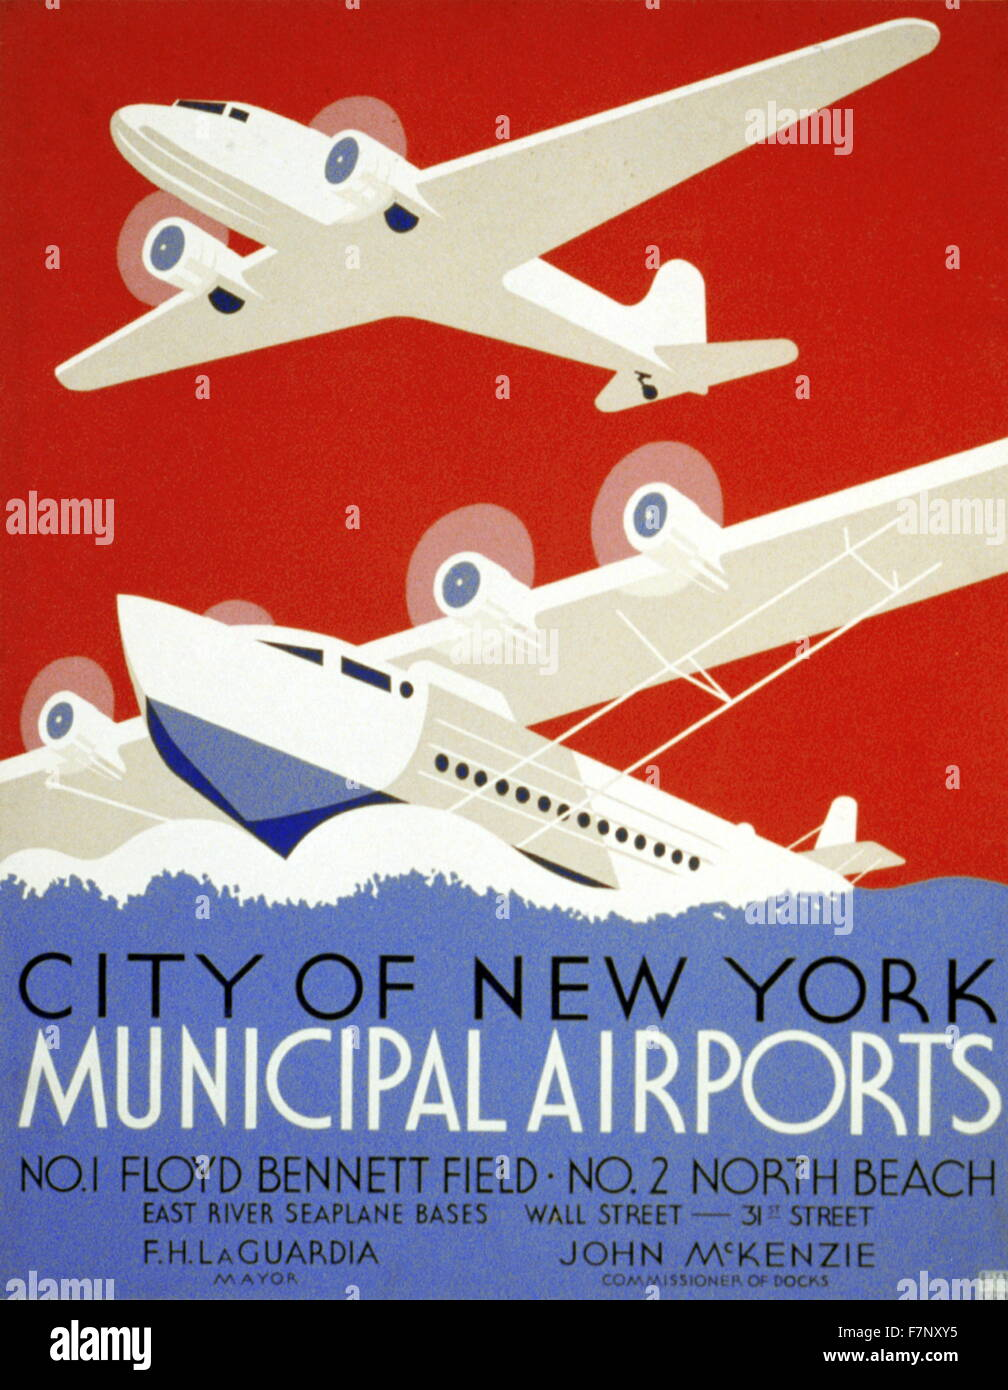 Poster promoting New York's municipal airports 1937 - Stock Image